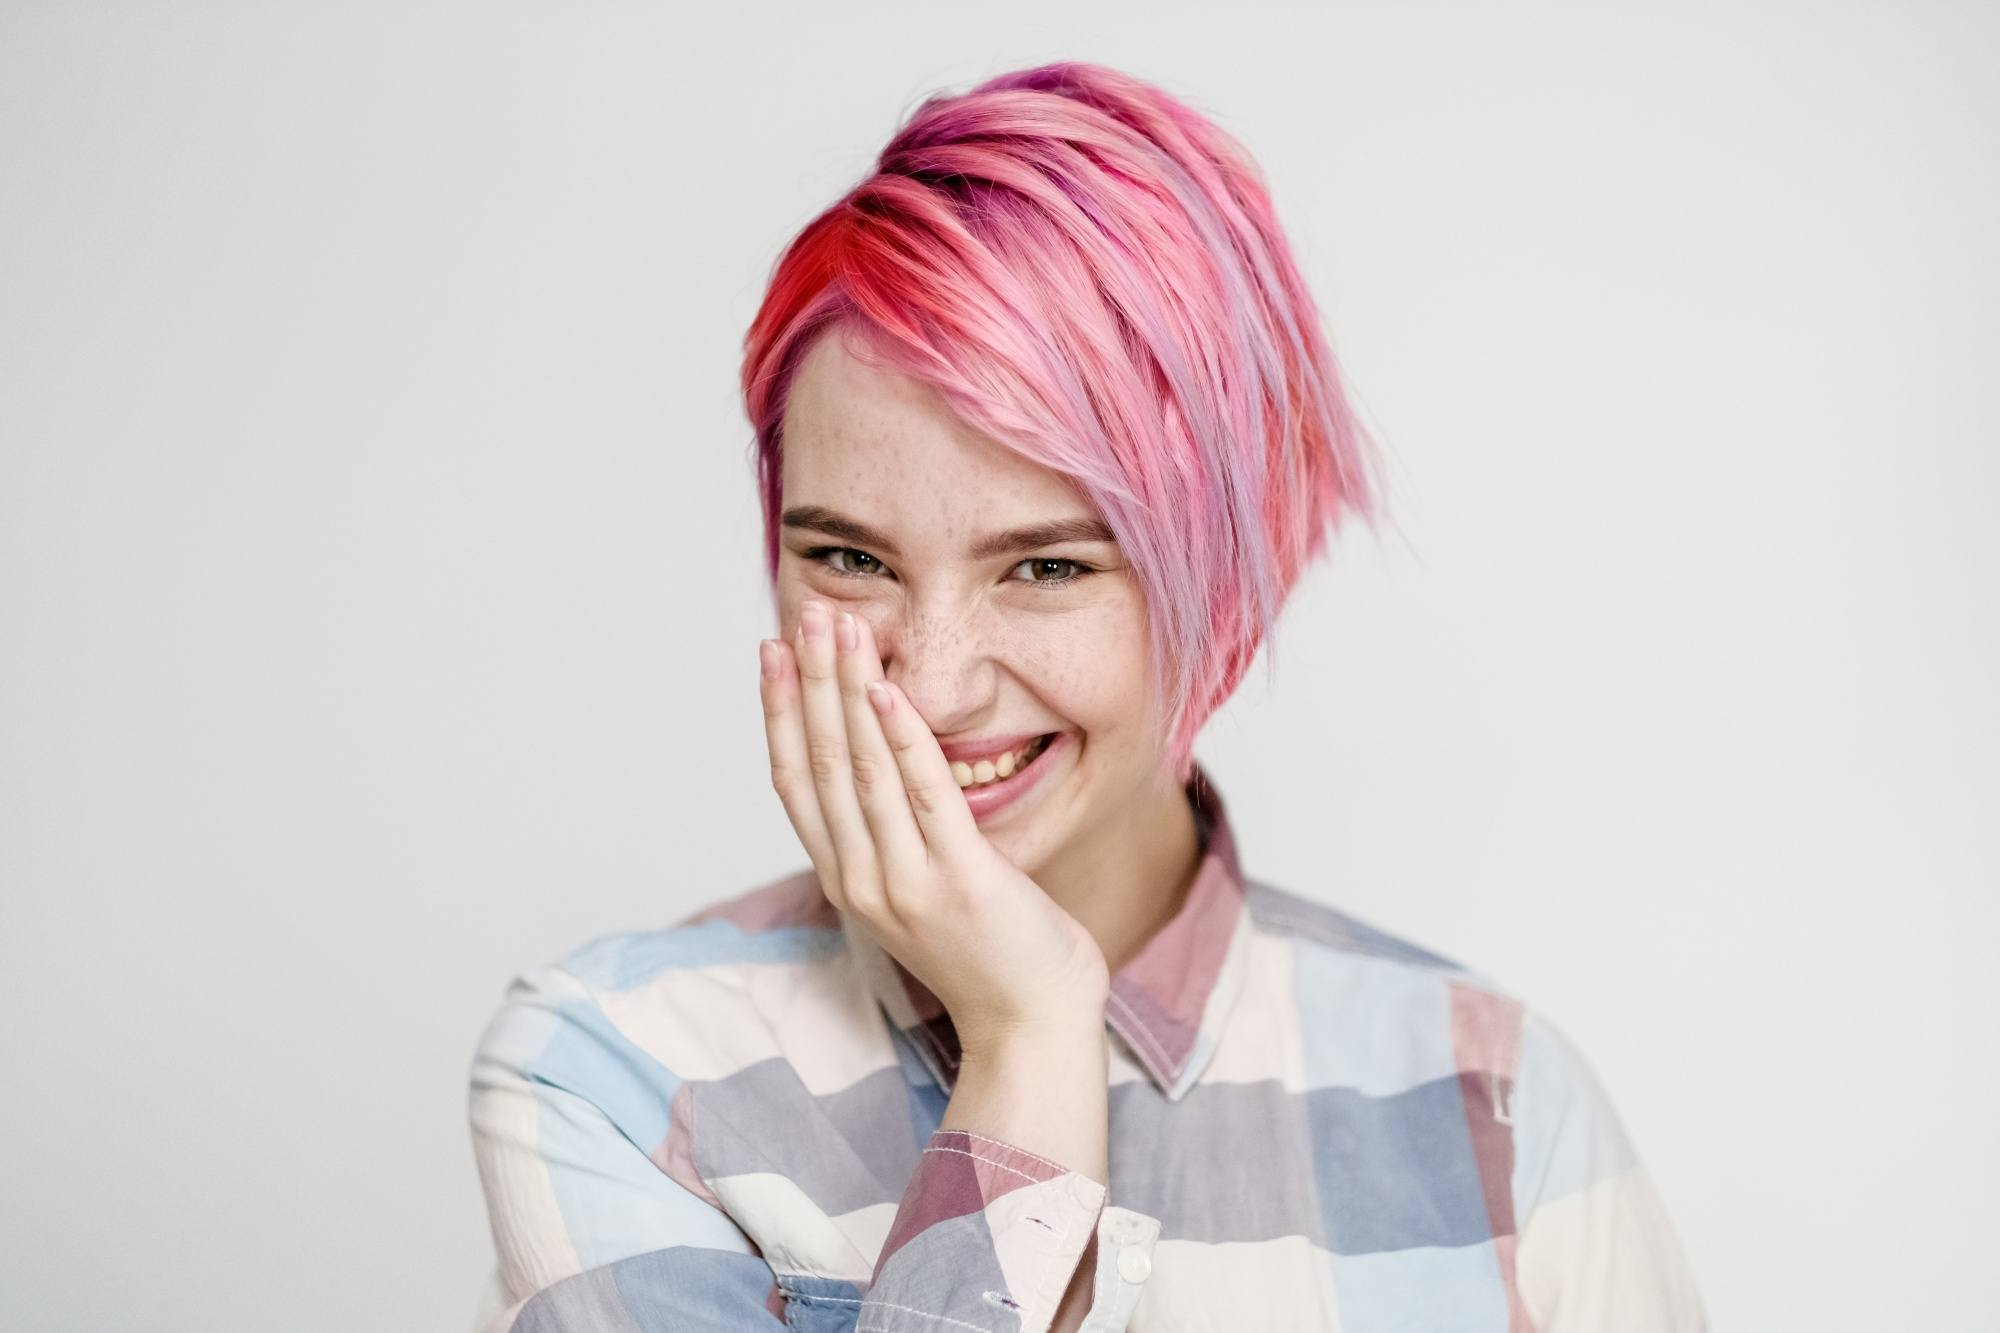 Bob haircuts for fine hair: Woman with short pink hair touching her face laughing